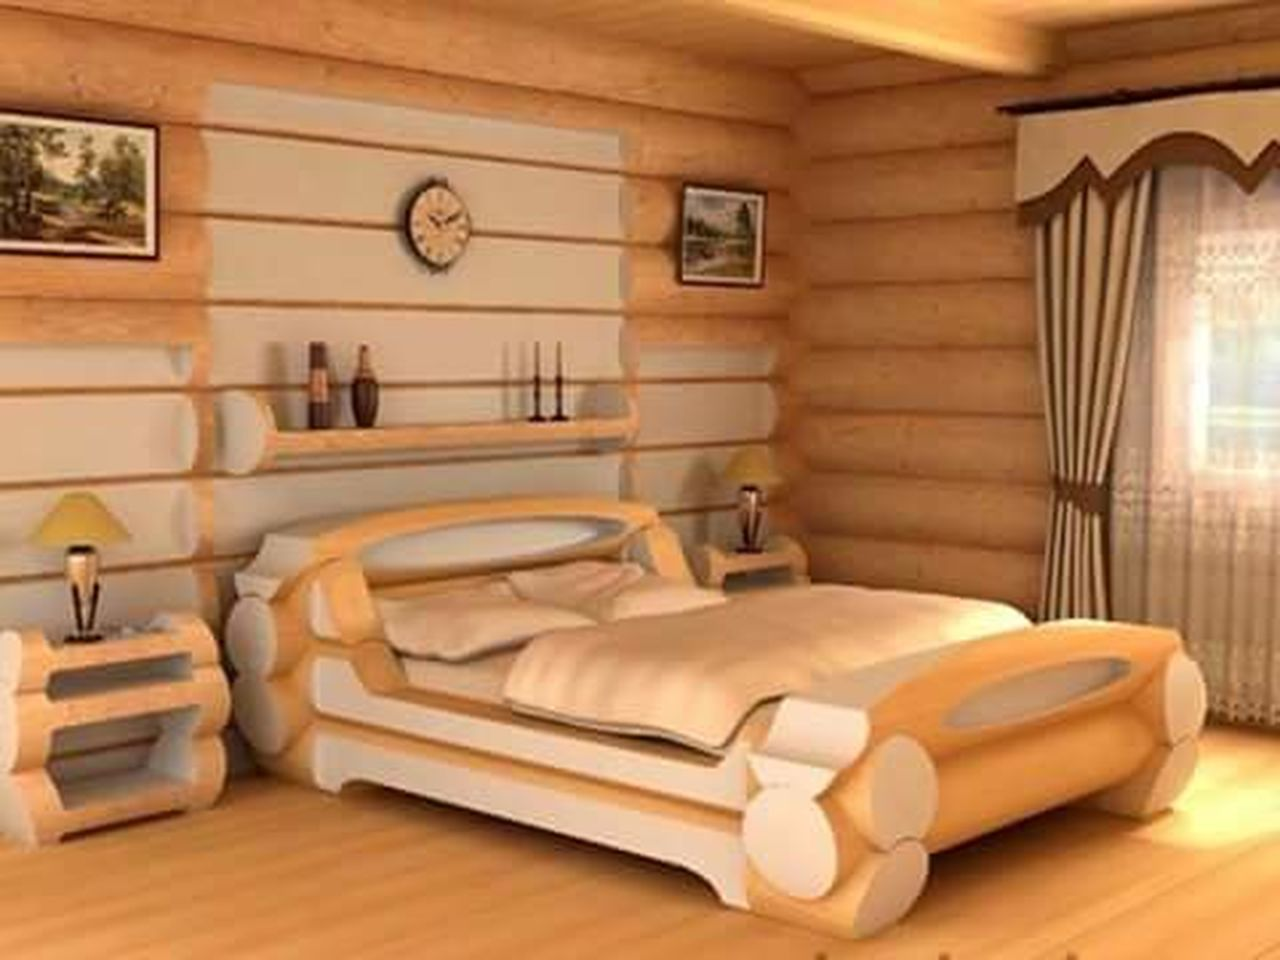 bed, bedroom, furniture, indoors, luxury, domestic room, home interior, window, no people, elegance, home showcase interior, pillow, day